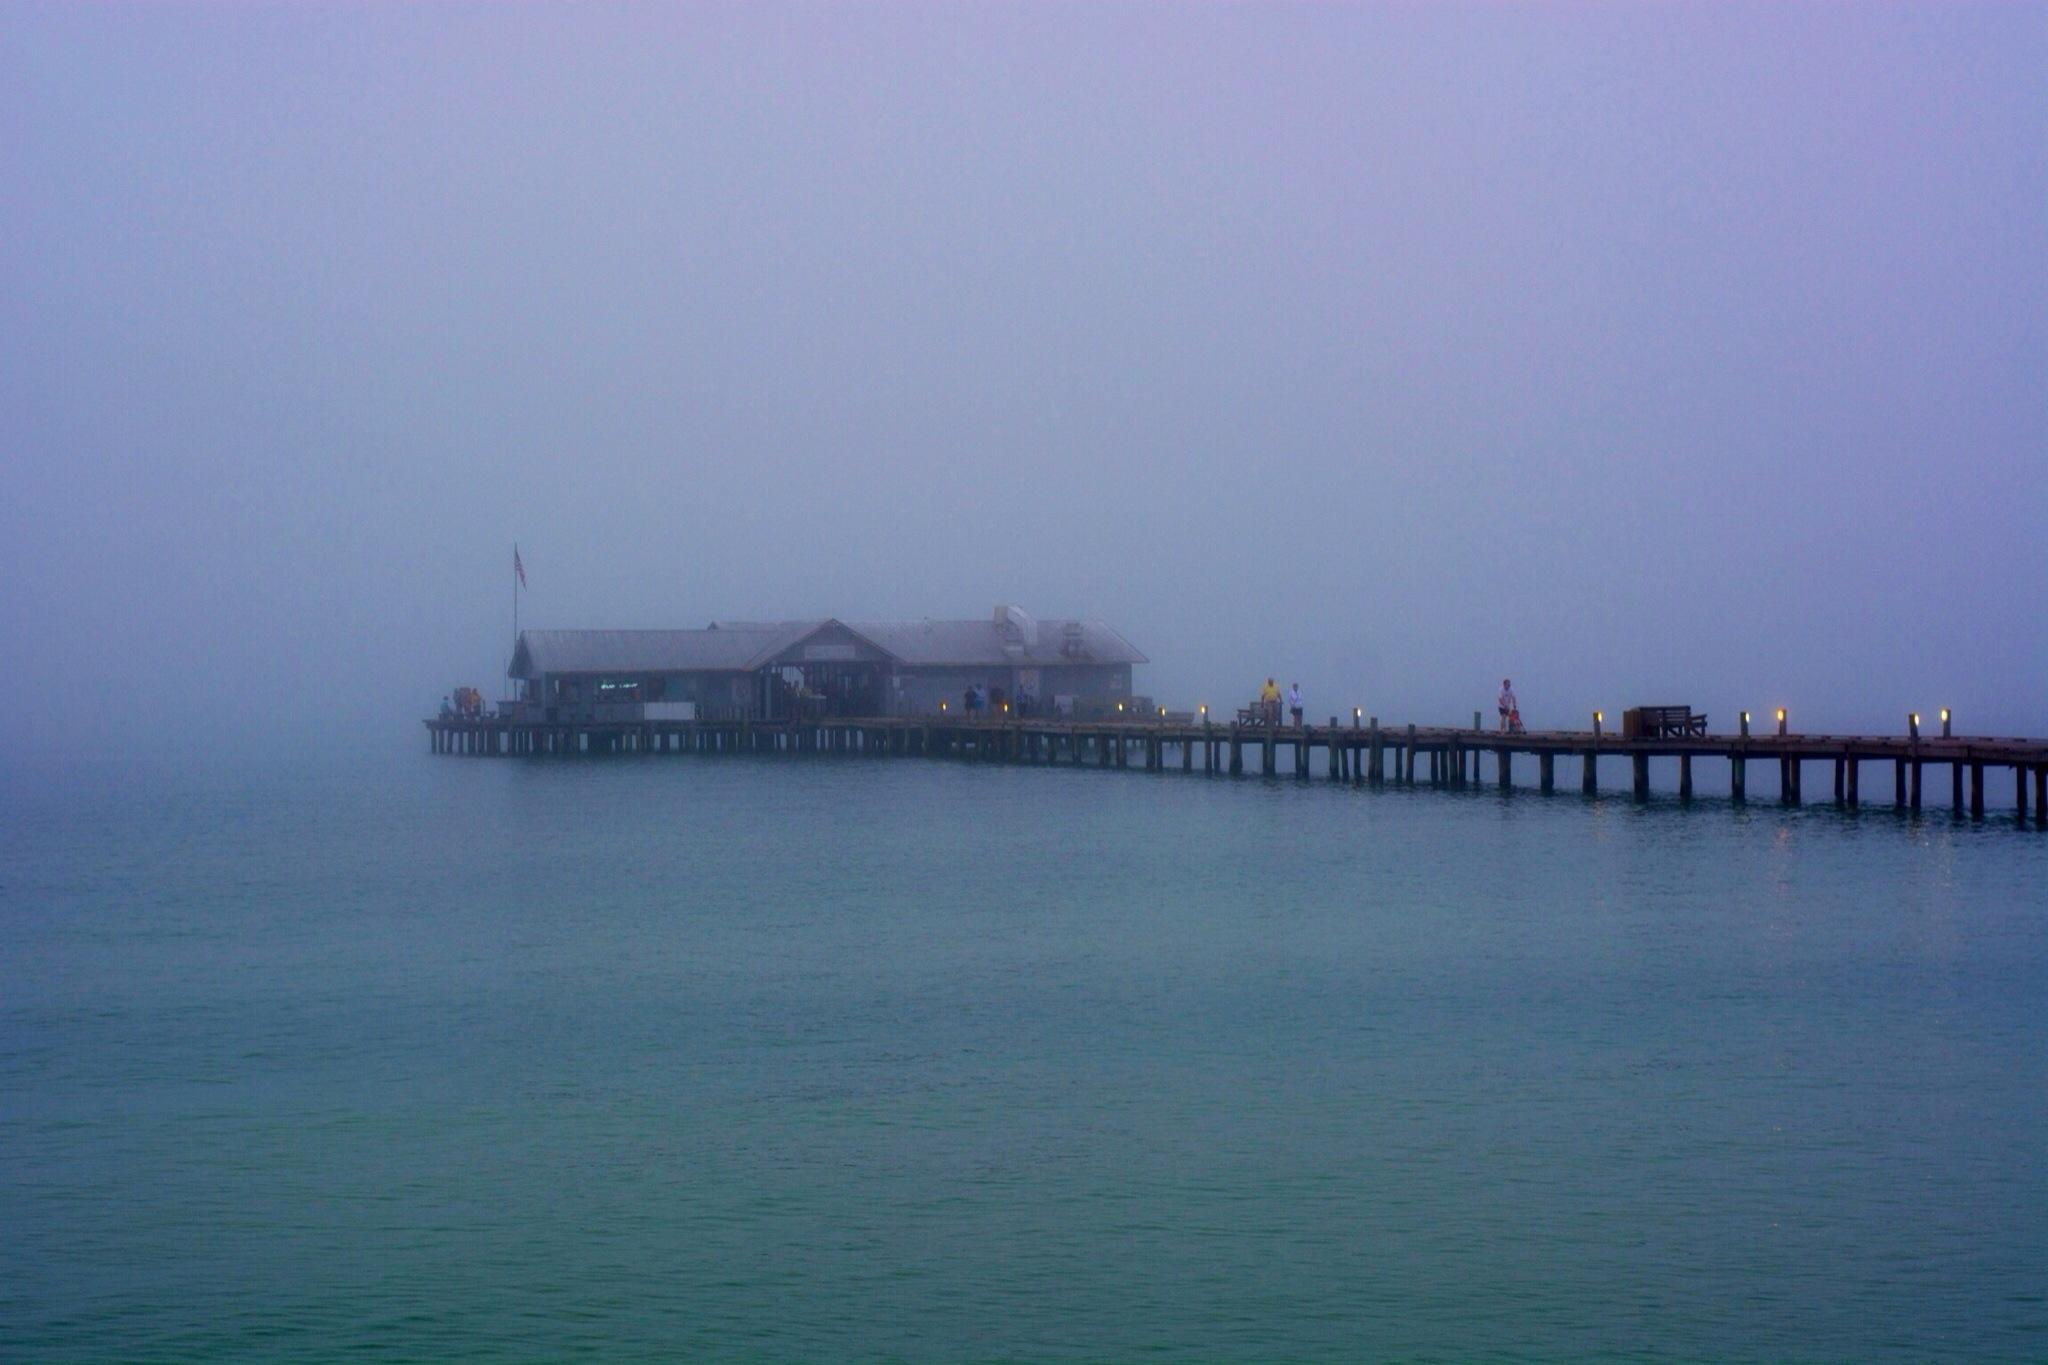 Pier in a foggy night